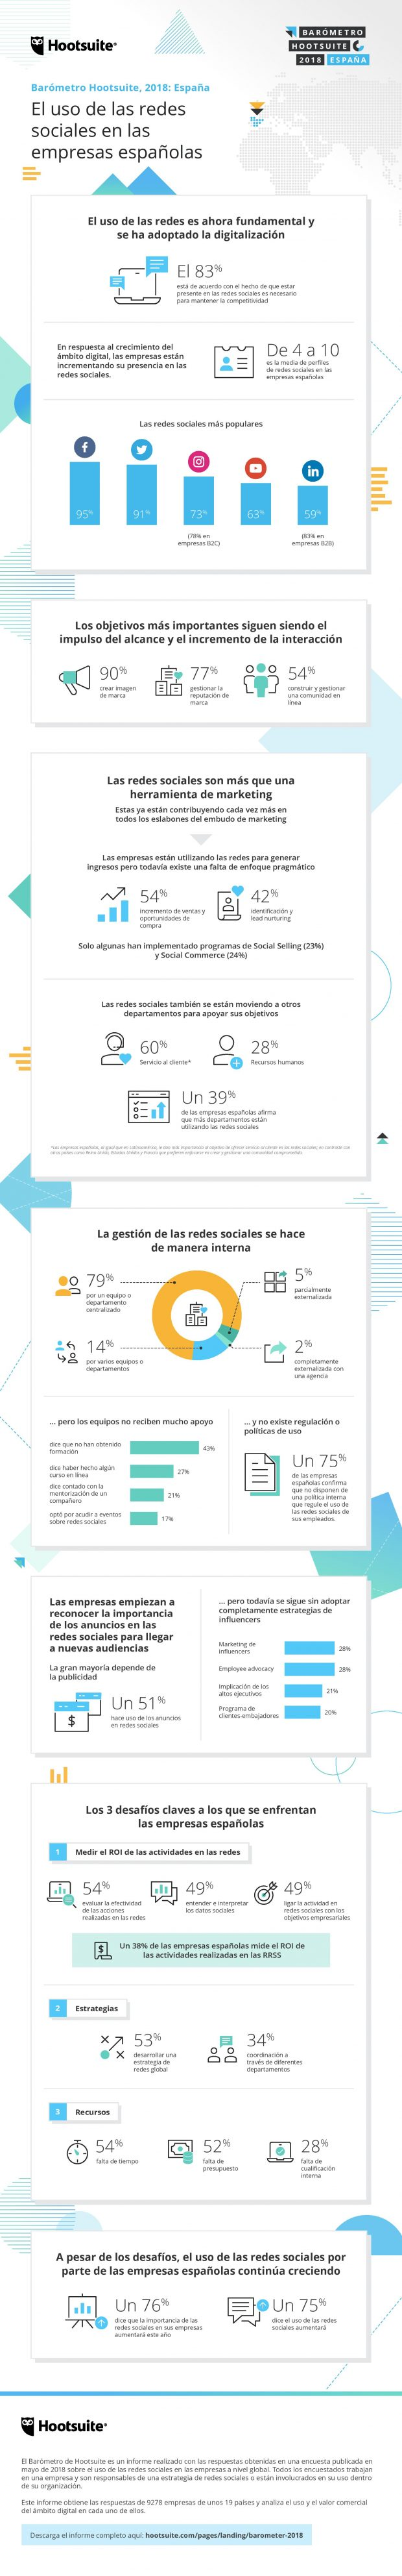 Marketing Social - Infografía España